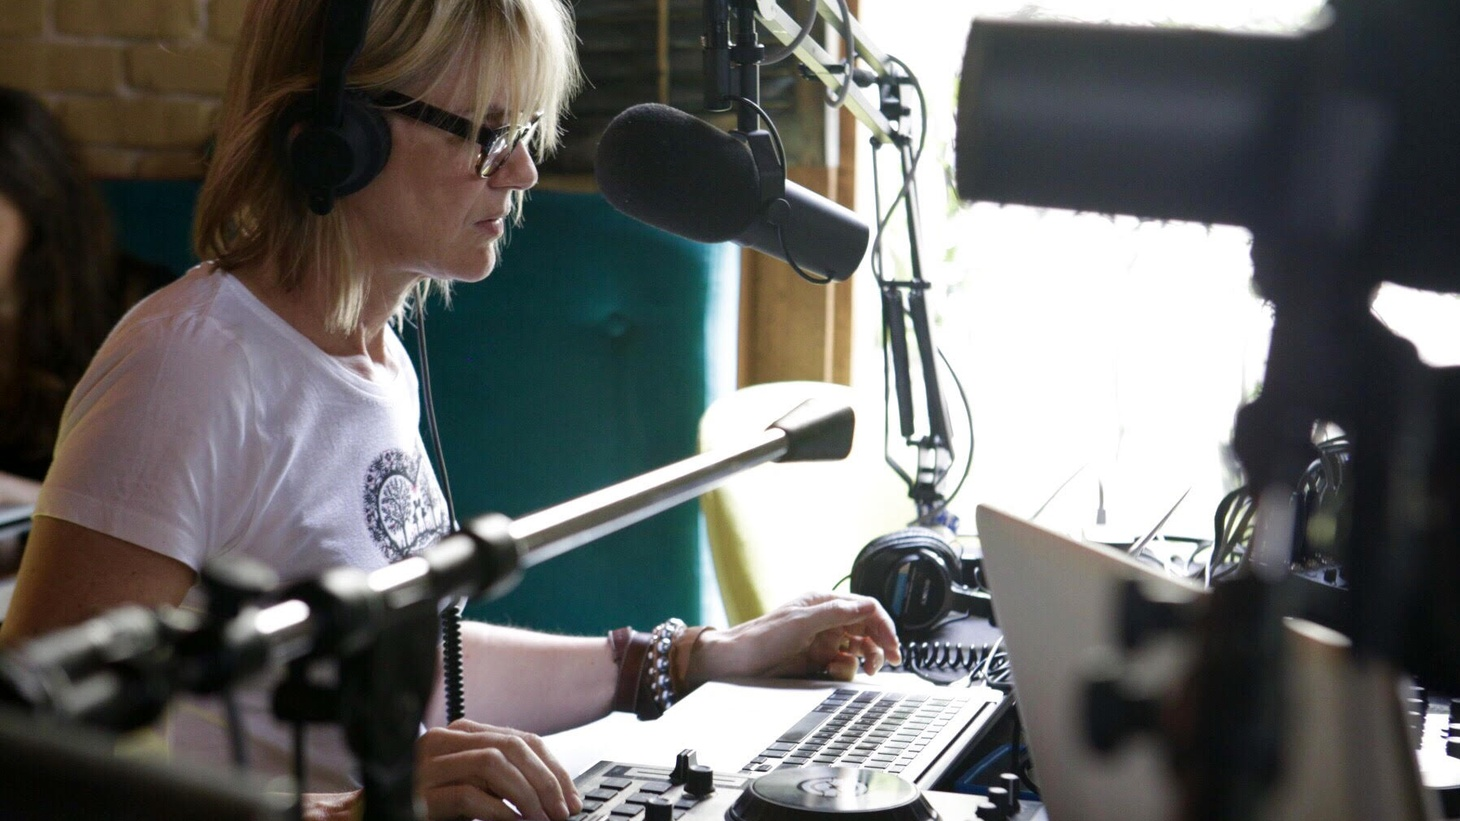 Anne Litt broadcasts LIVE from the SXSW Music Festival in Austin, Texas.